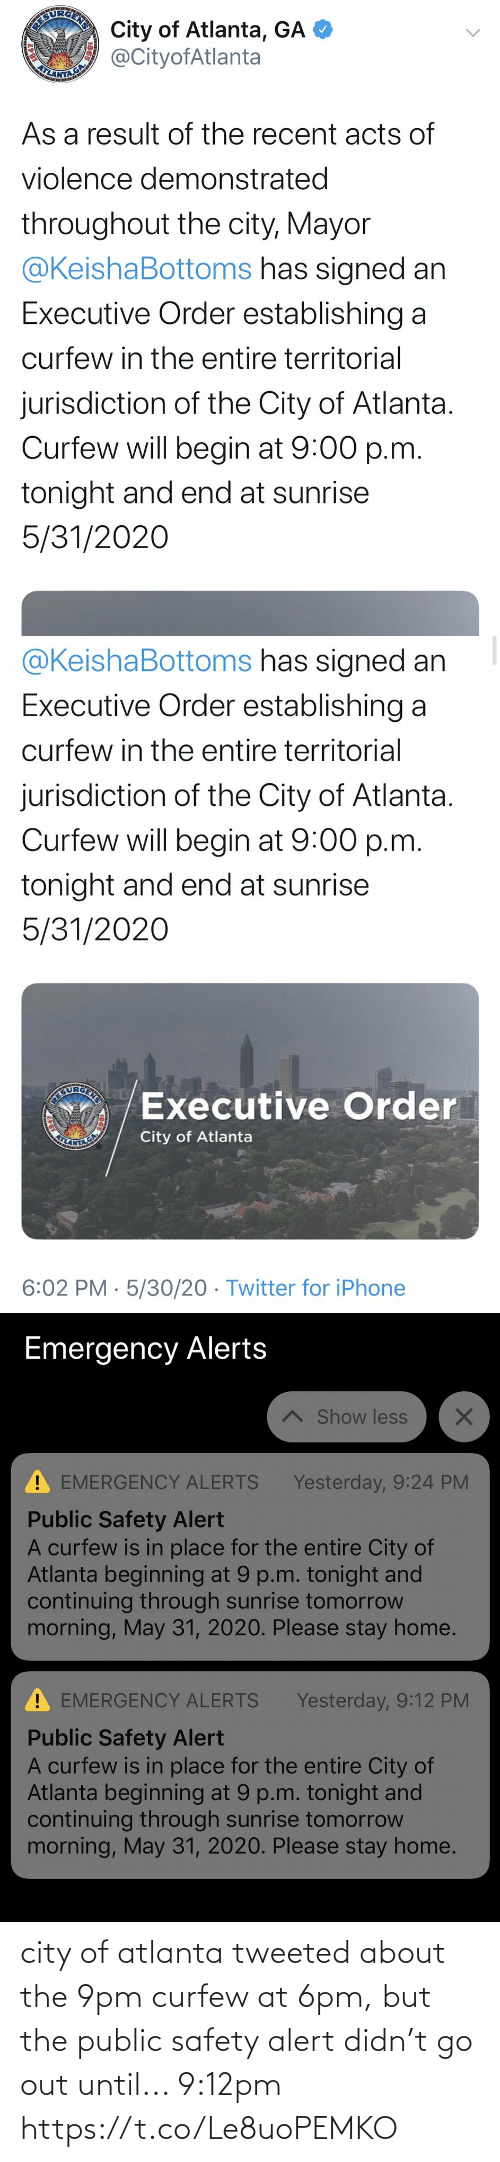 Safety: city of atlanta tweeted about the 9pm curfew at 6pm, but the public safety alert didn't go out until... 9:12pm https://t.co/Le8uoPEMKO